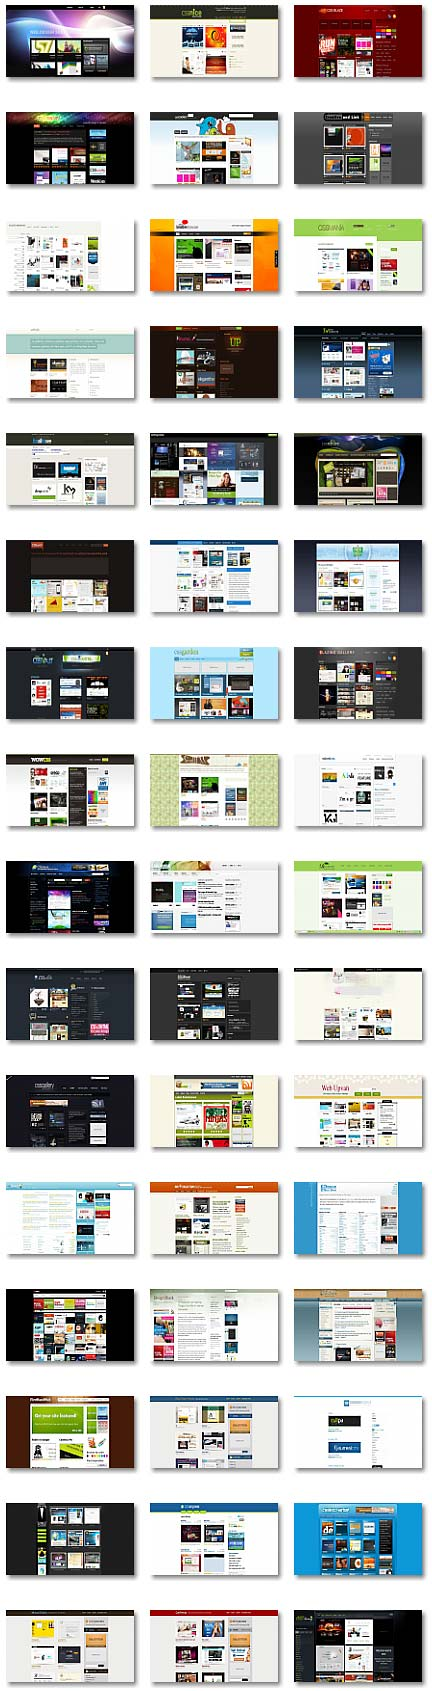 45-web-design-galleries-for-inspiration